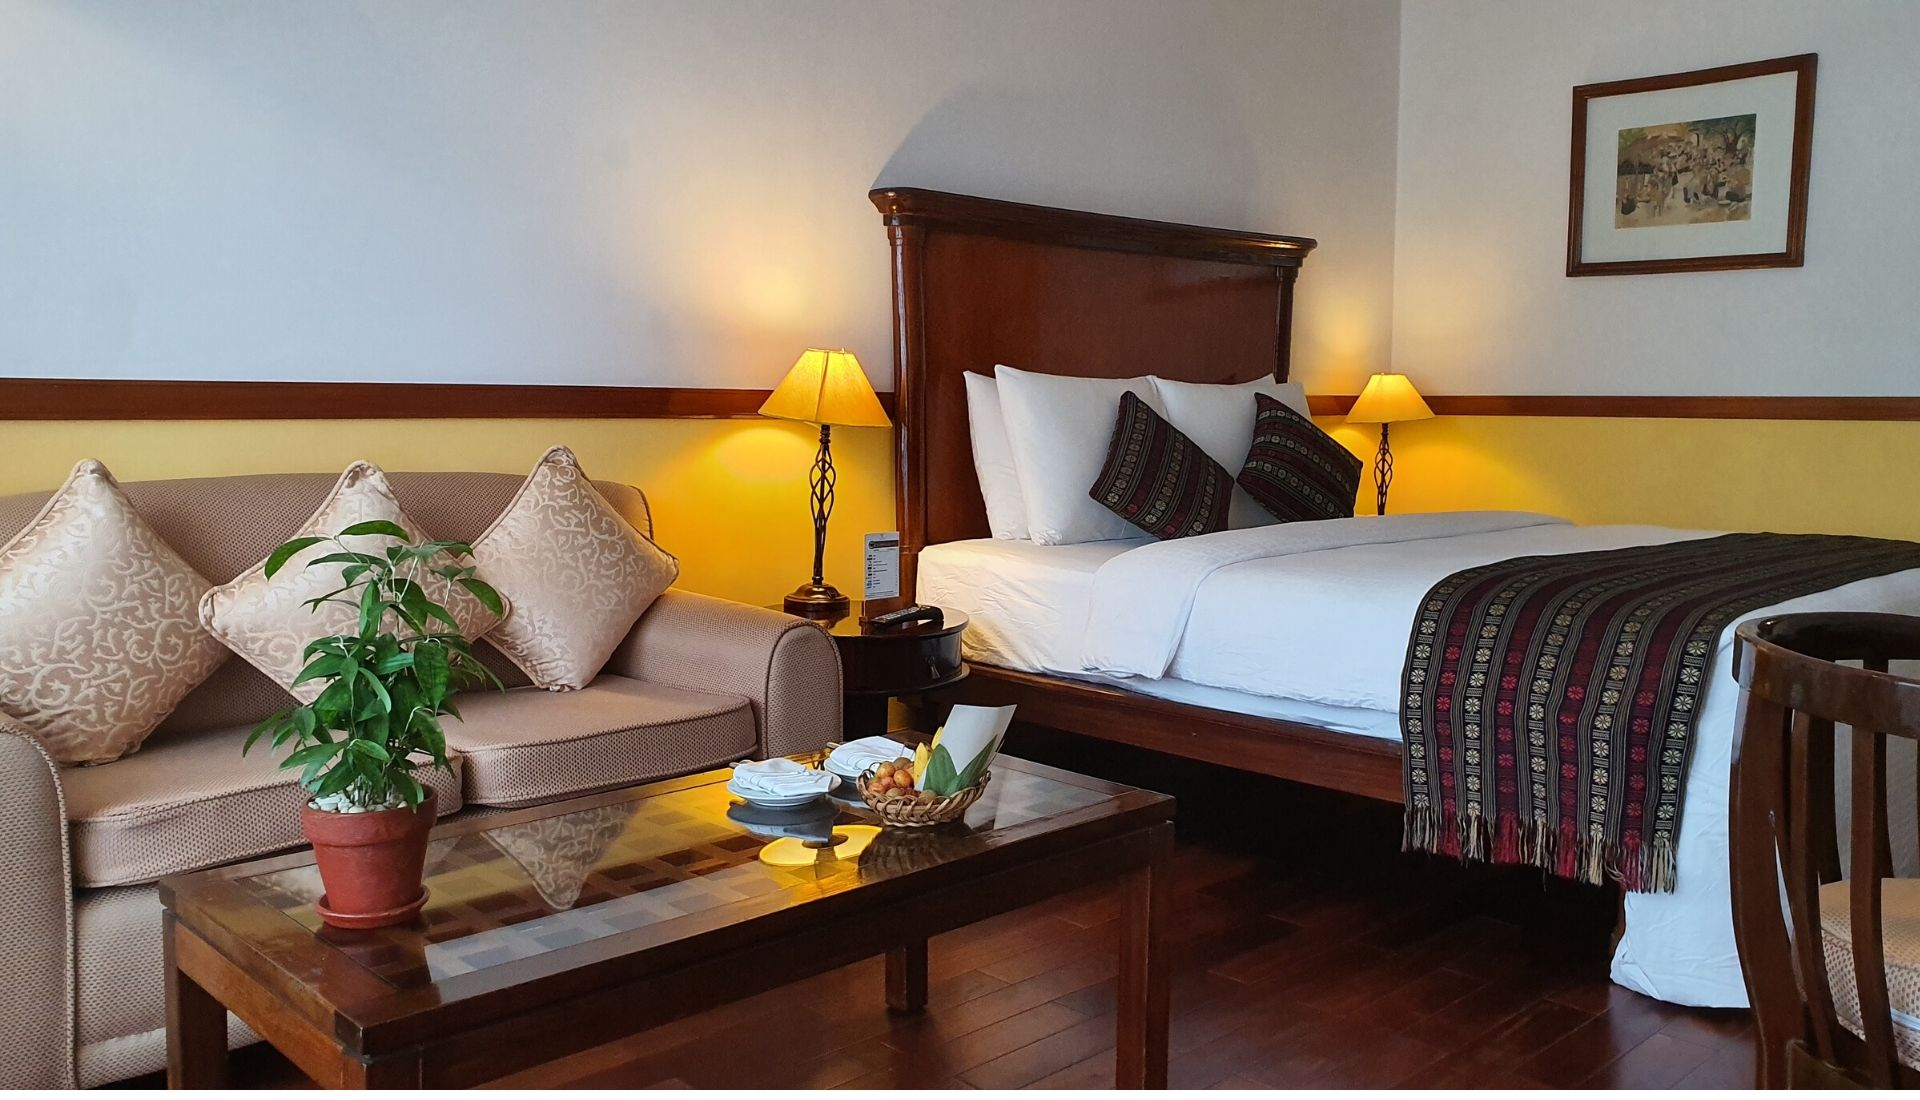 Our deluxe bedroom at the Victoria Can Tho Hotel